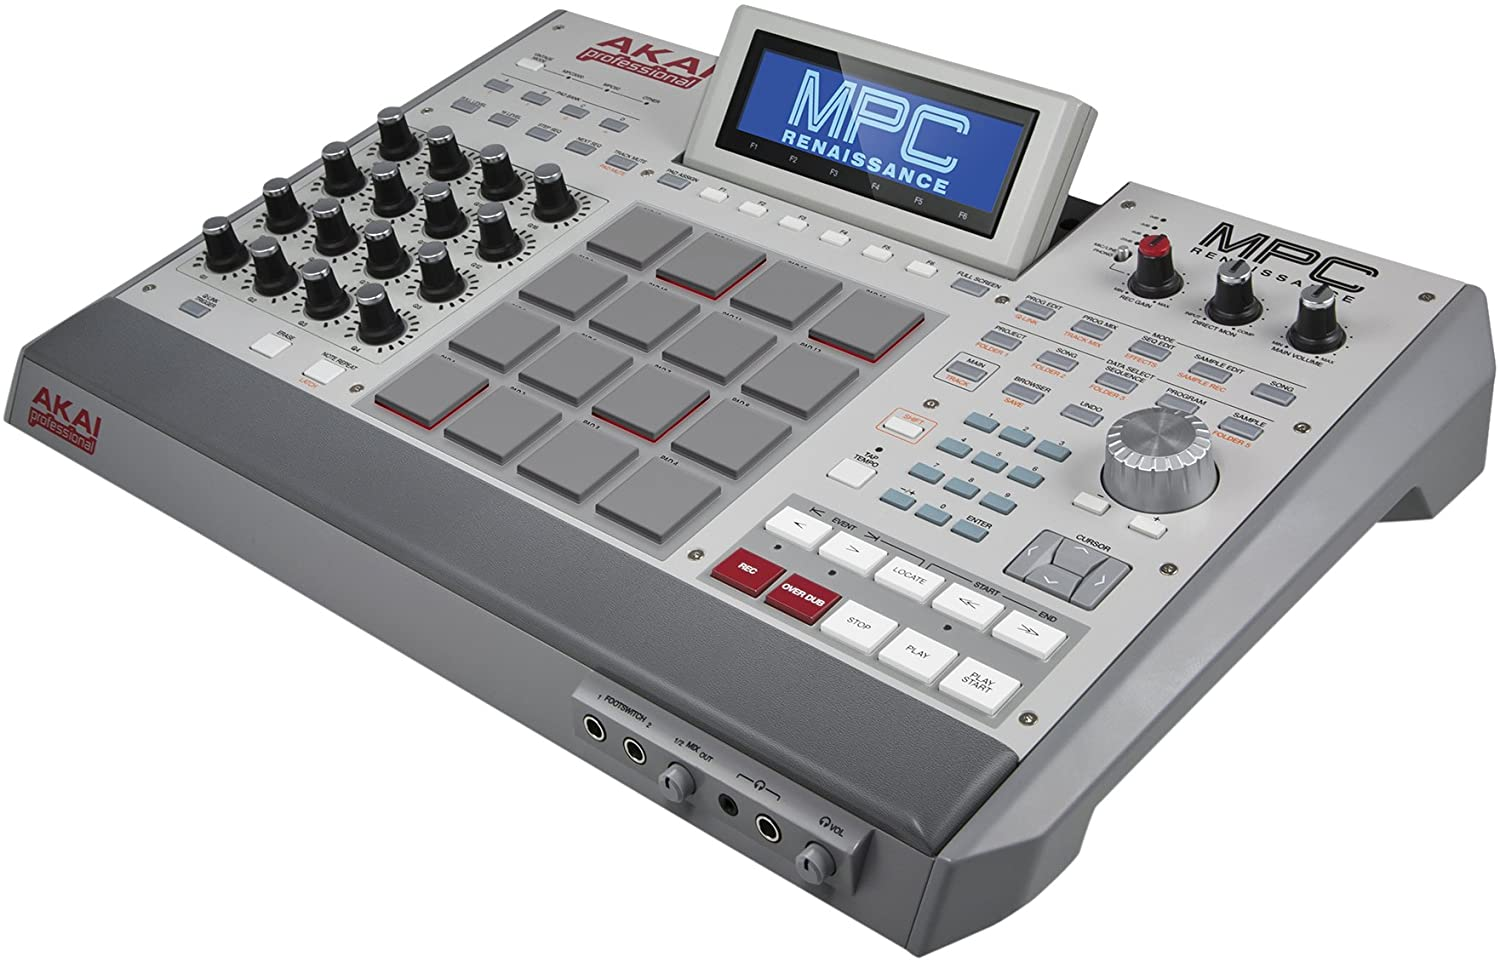 Akai Professional Mpc Renaissance | Music Production Controller With 9Gb+ Sound Library Download